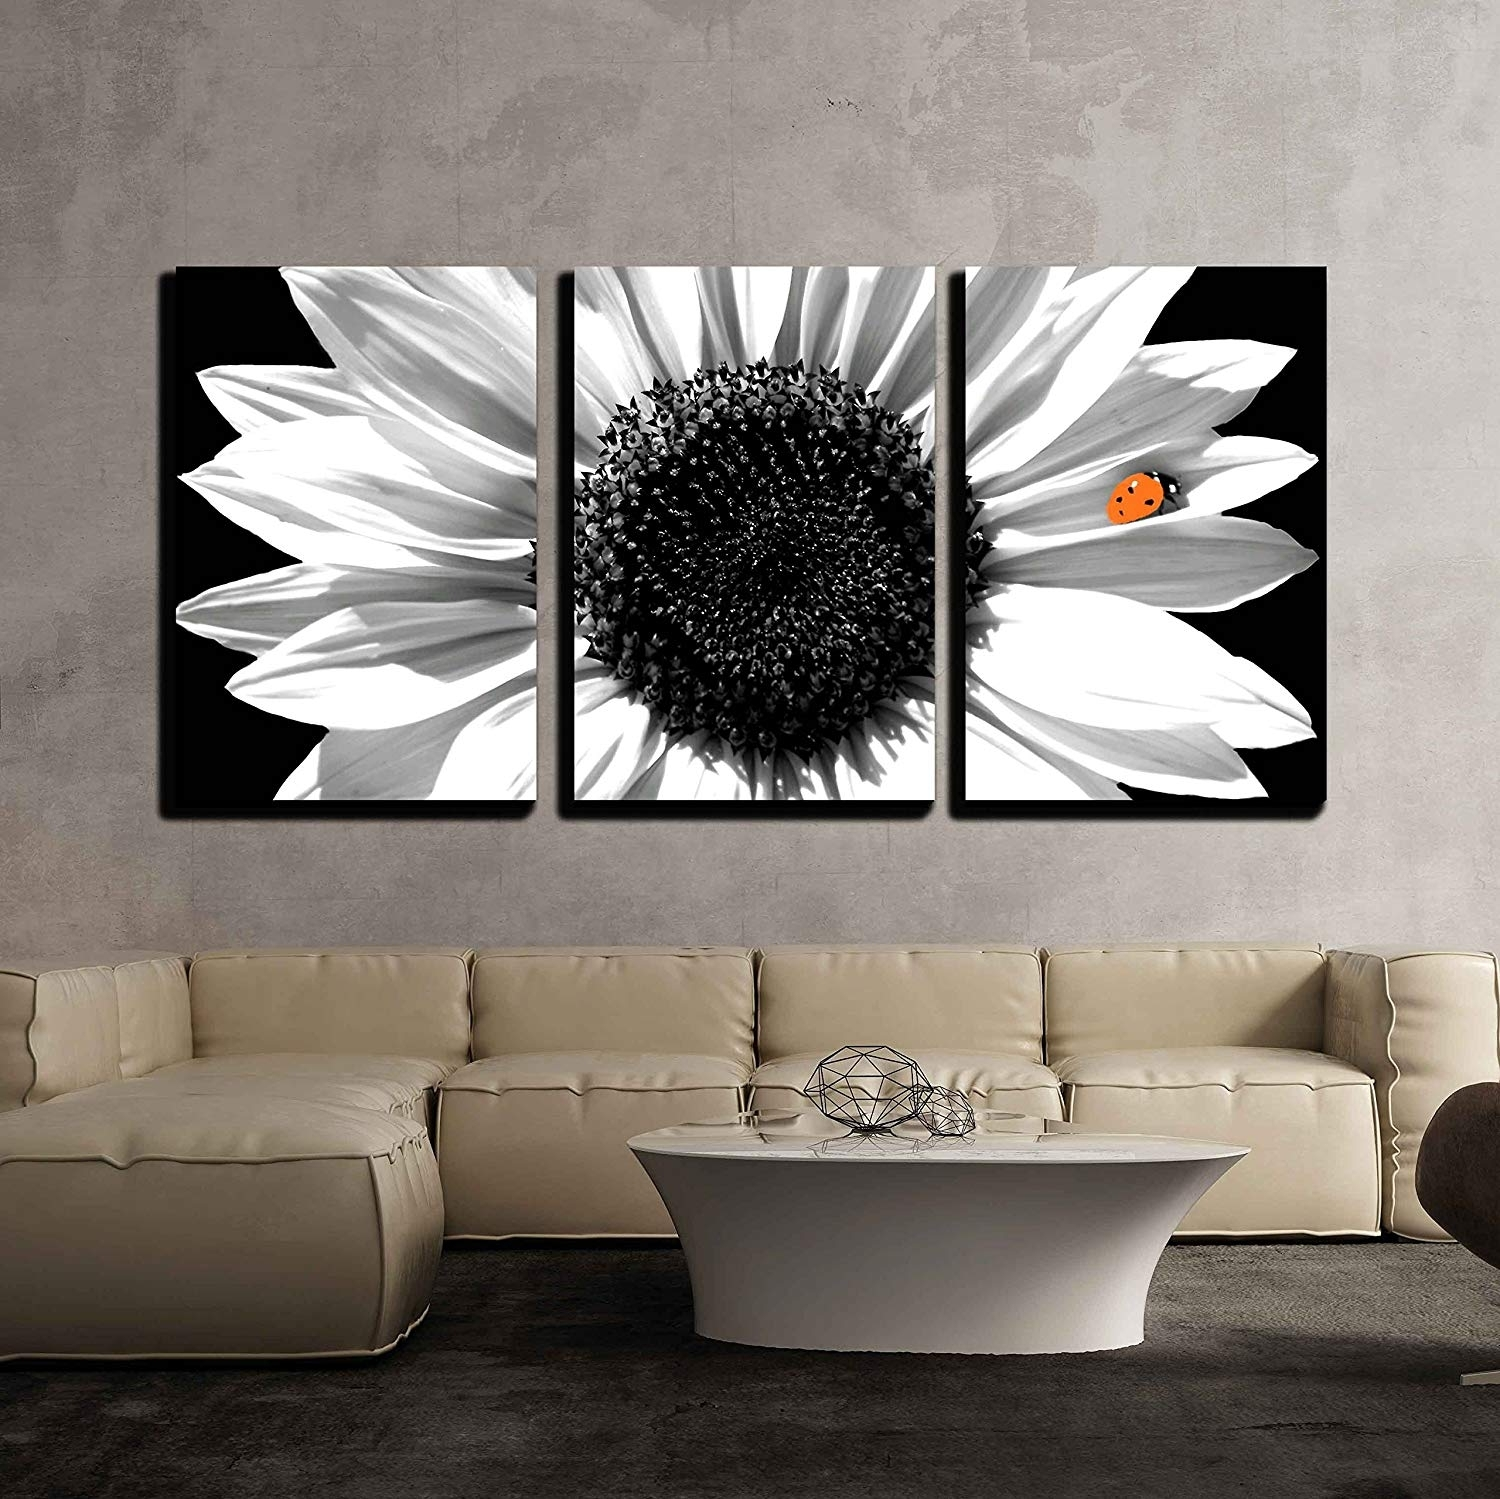 Sunflower In Black And White Wall Decor X3 Panels - Canvas Art | Wall26 intended for Black and White Wall Art (Image 19 of 20)